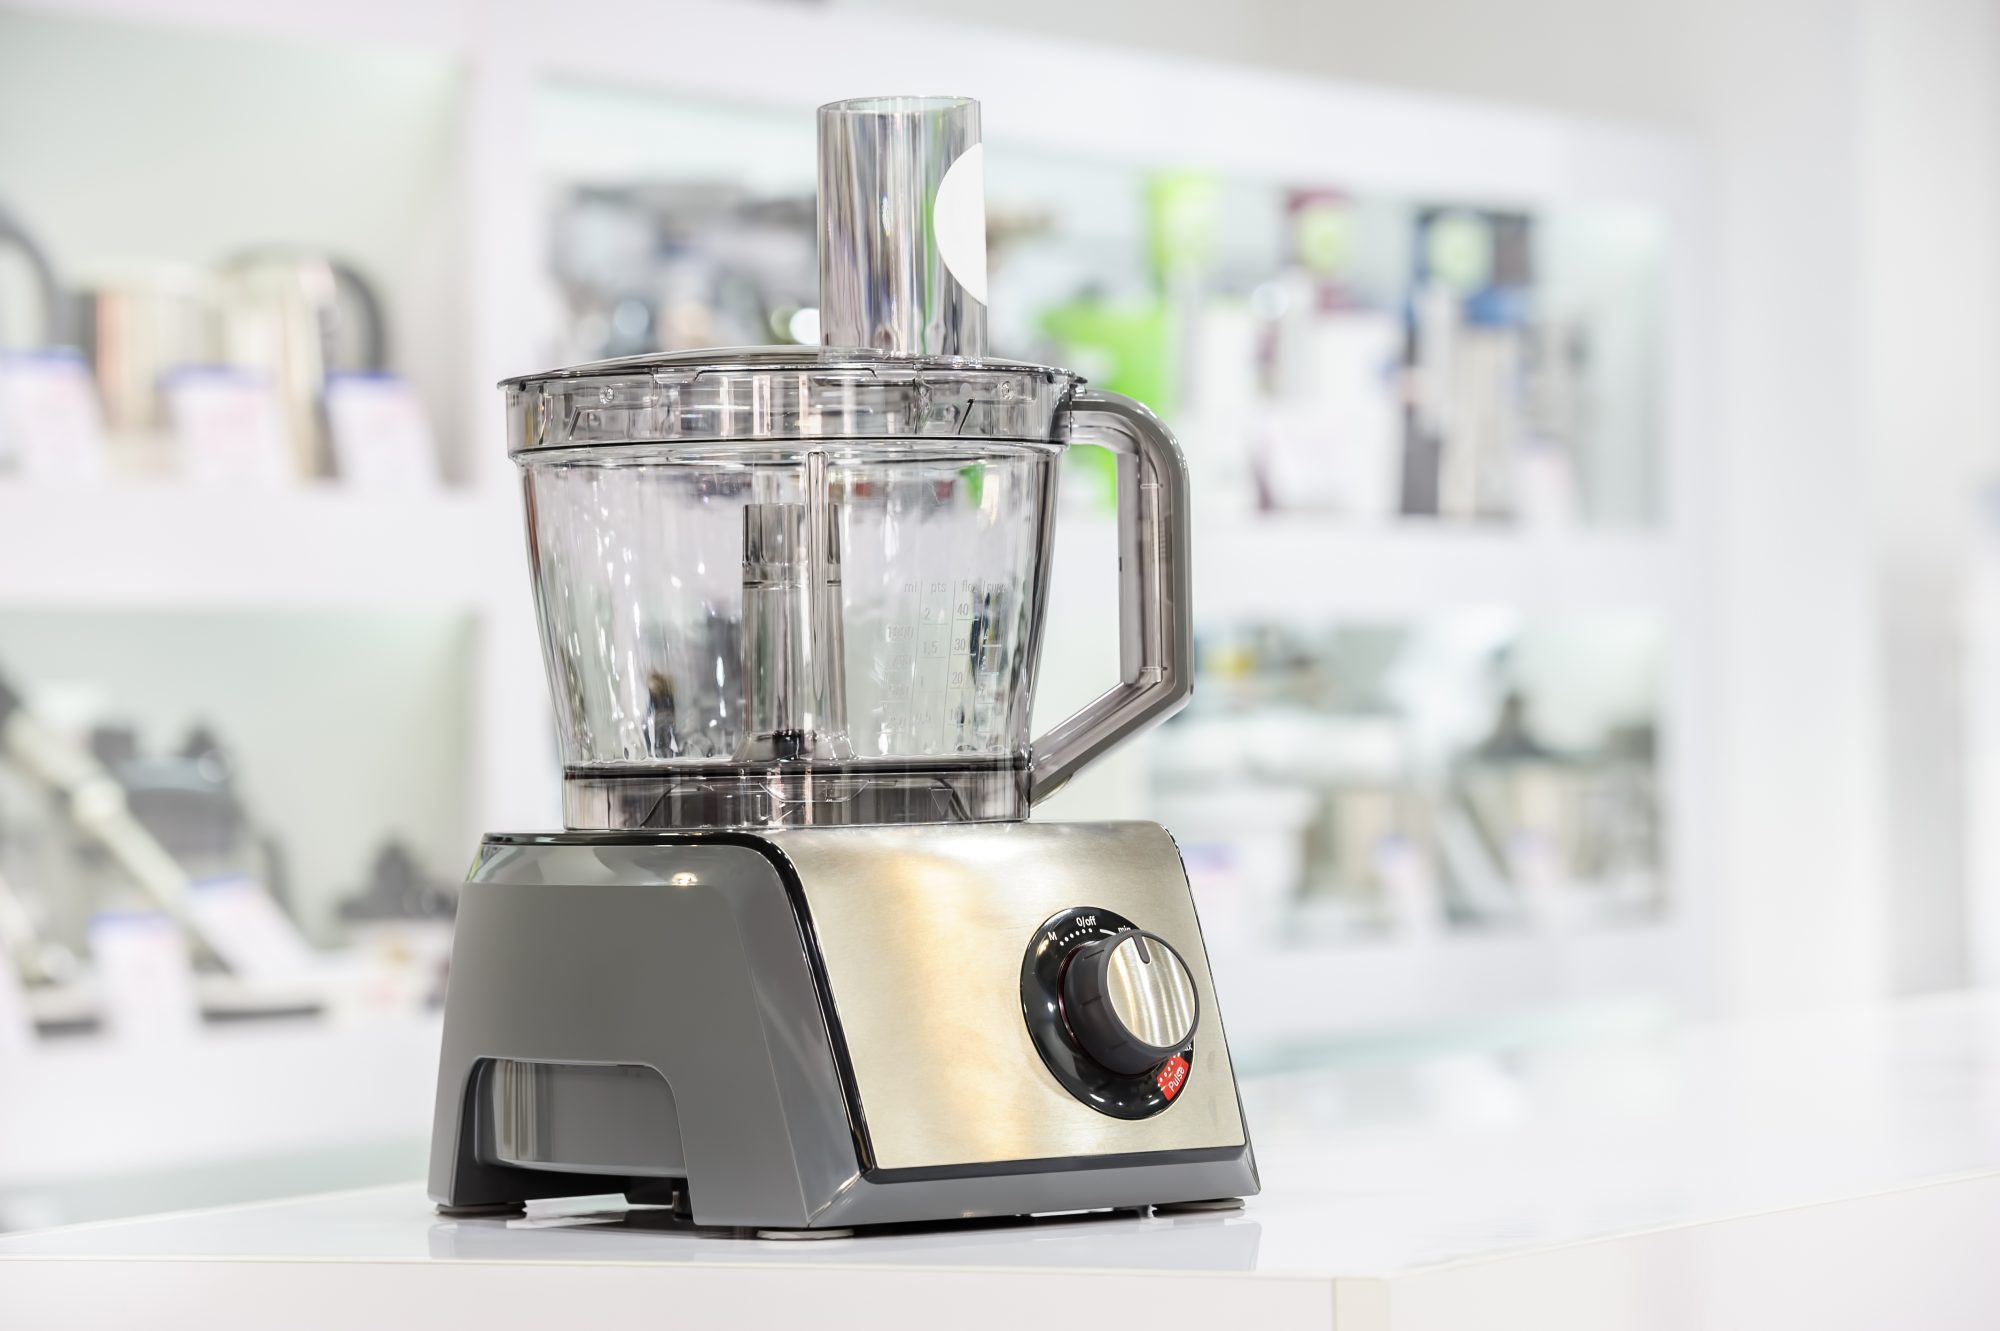 single electric food processor at retail store shelf, defocused background